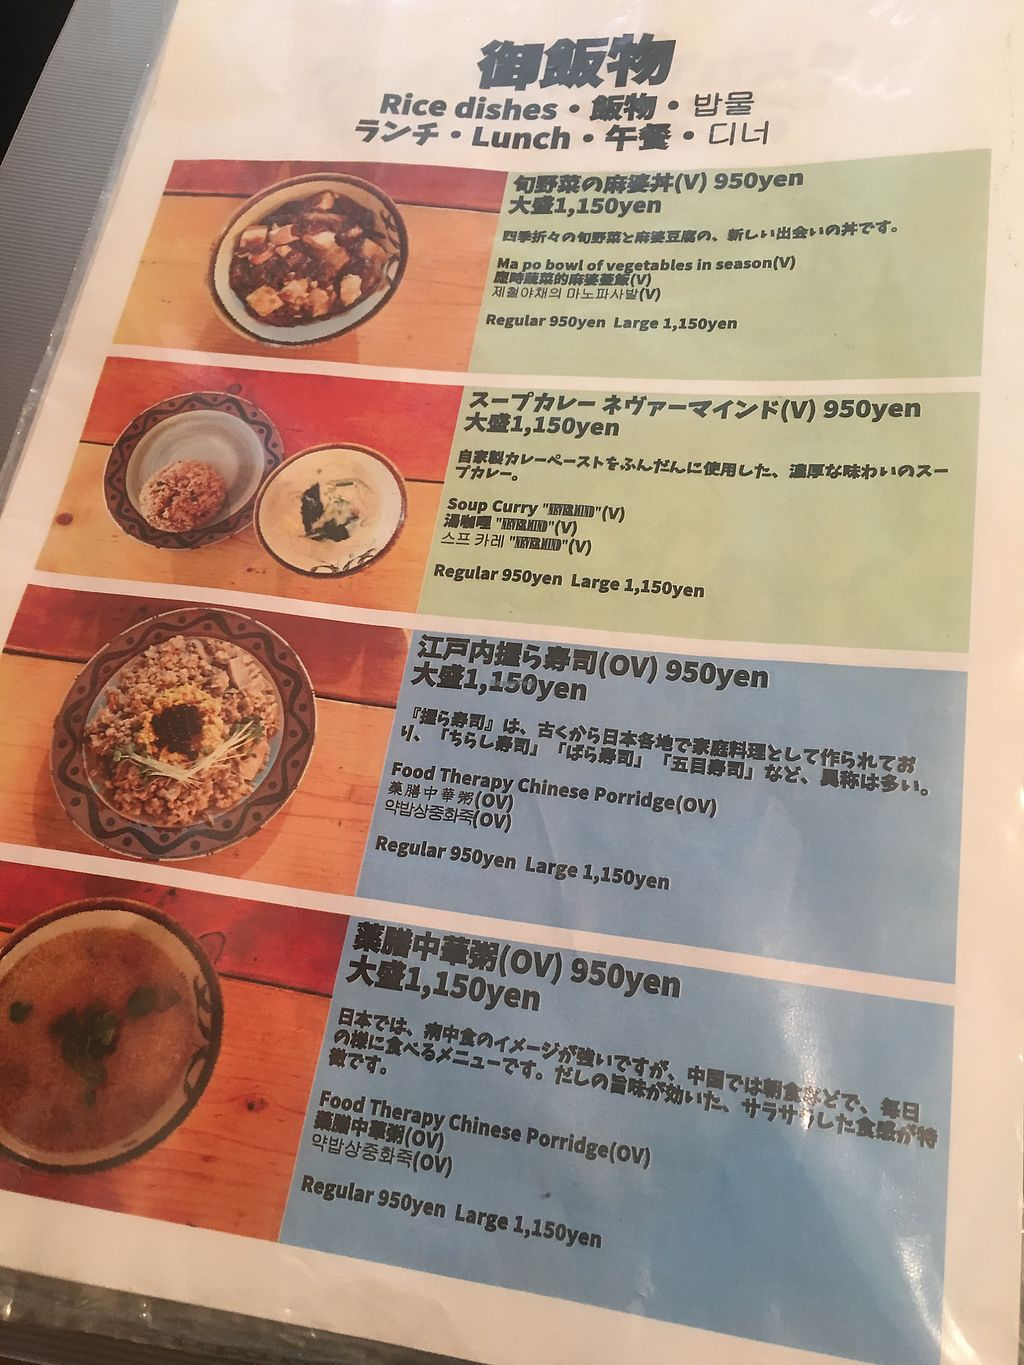 """Photo of Yakuzenshokudo Chabuzen  by <a href=""""/members/profile/robynie"""">robynie</a> <br/>Rice dishes menu <br/> May 19, 2018  - <a href='/contact/abuse/image/29862/401717'>Report</a>"""